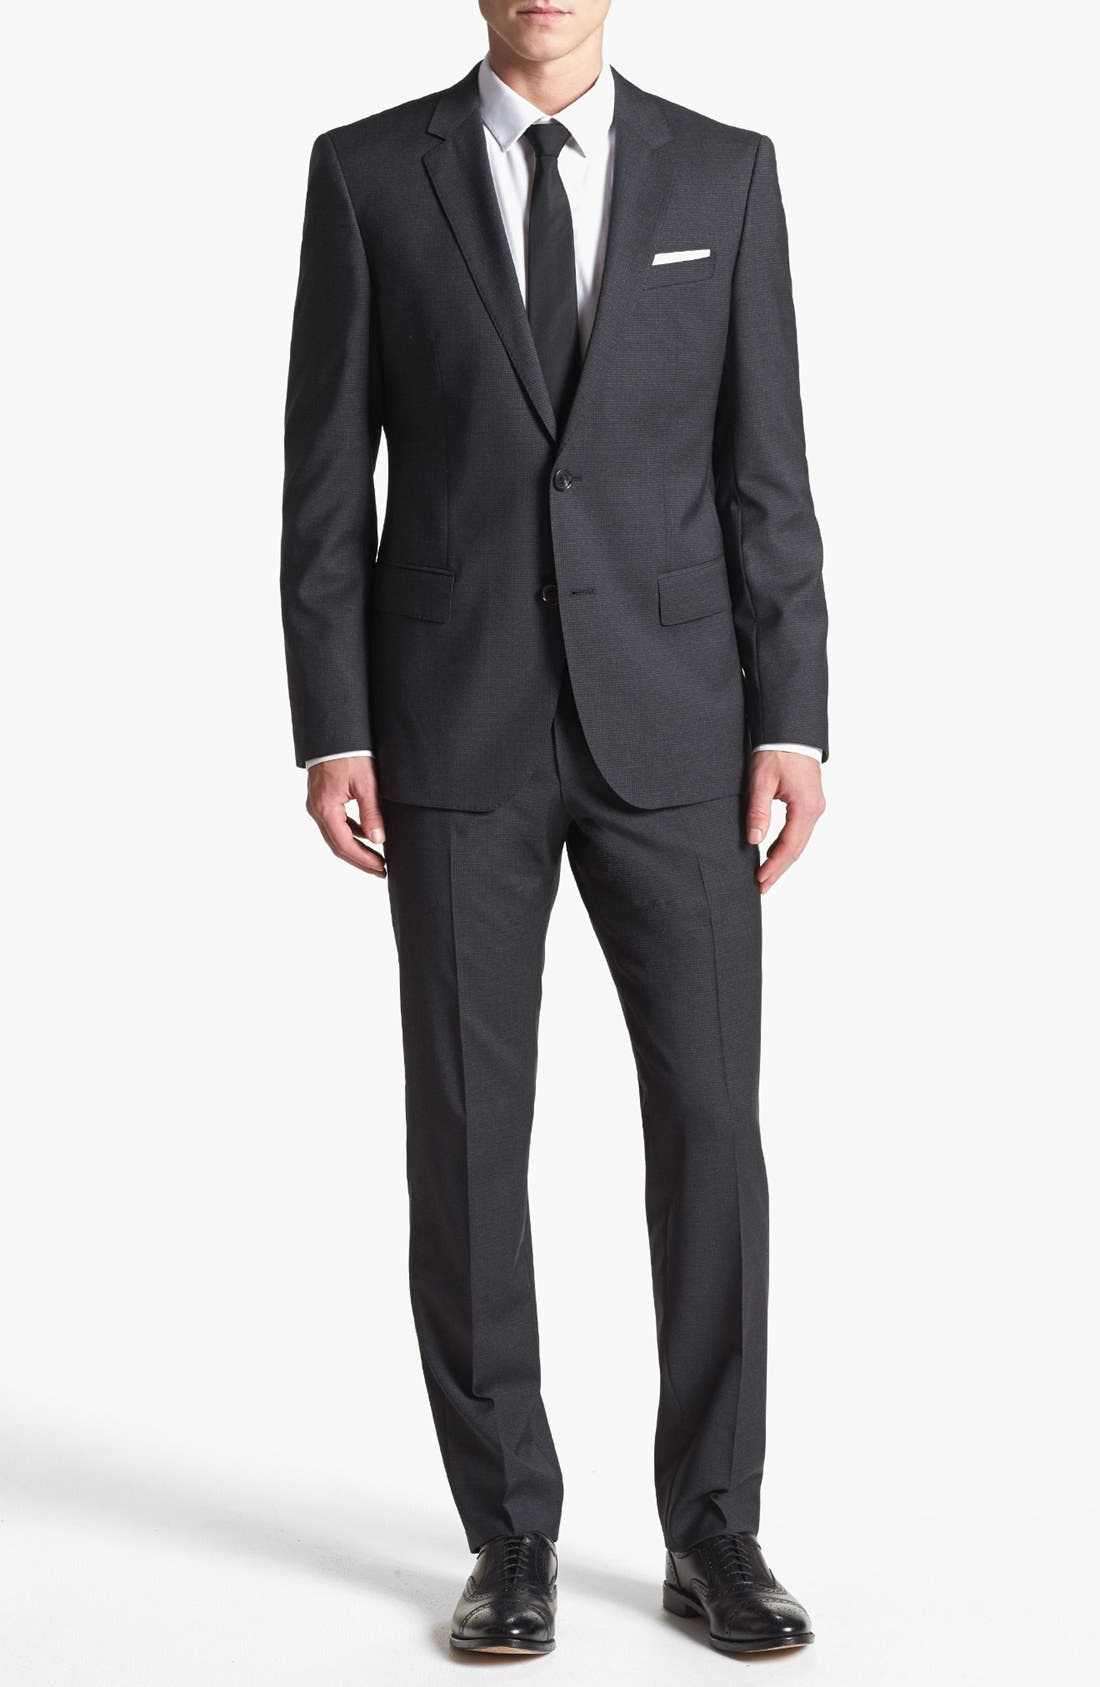 Alternate Image 1 Selected - HUGE GENIUS BOX CHECK TWO BUTTON TRIM FIT SUIT